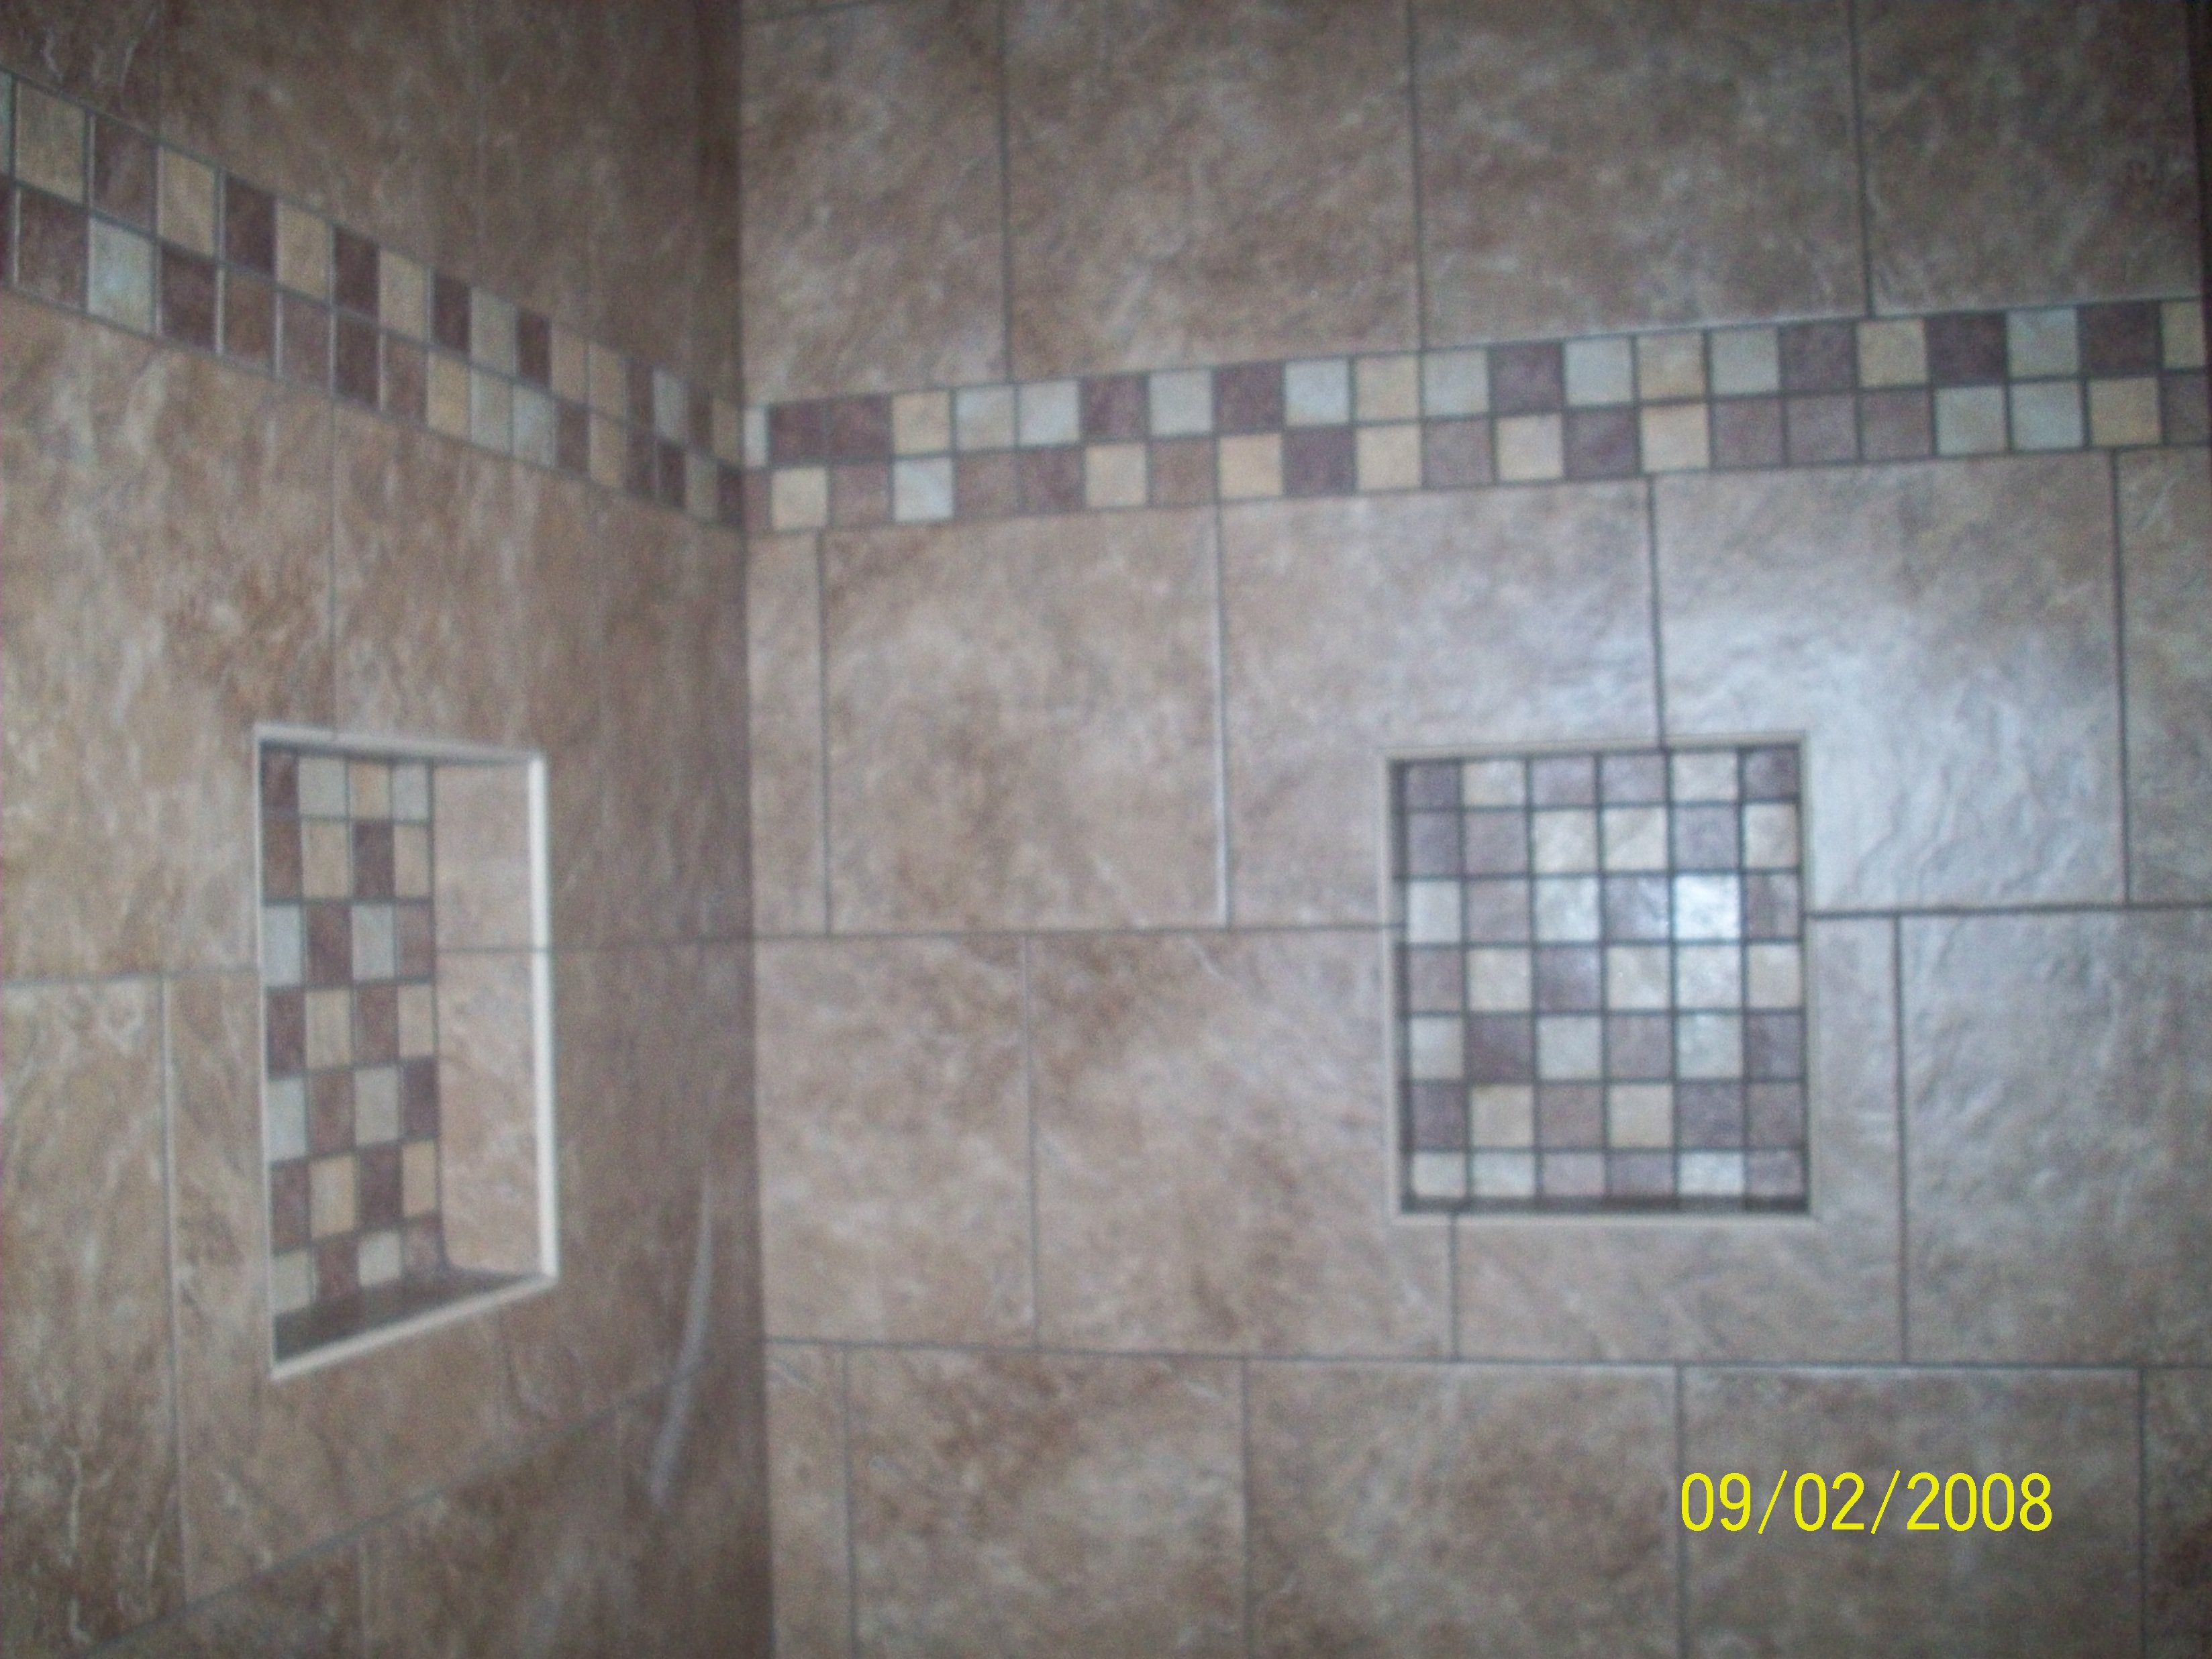 17 Best images about Bathroom on Pinterest   Shower tiles  Small bathroom  tiles and Custom shower. 17 Best images about Bathroom on Pinterest   Shower tiles  Small